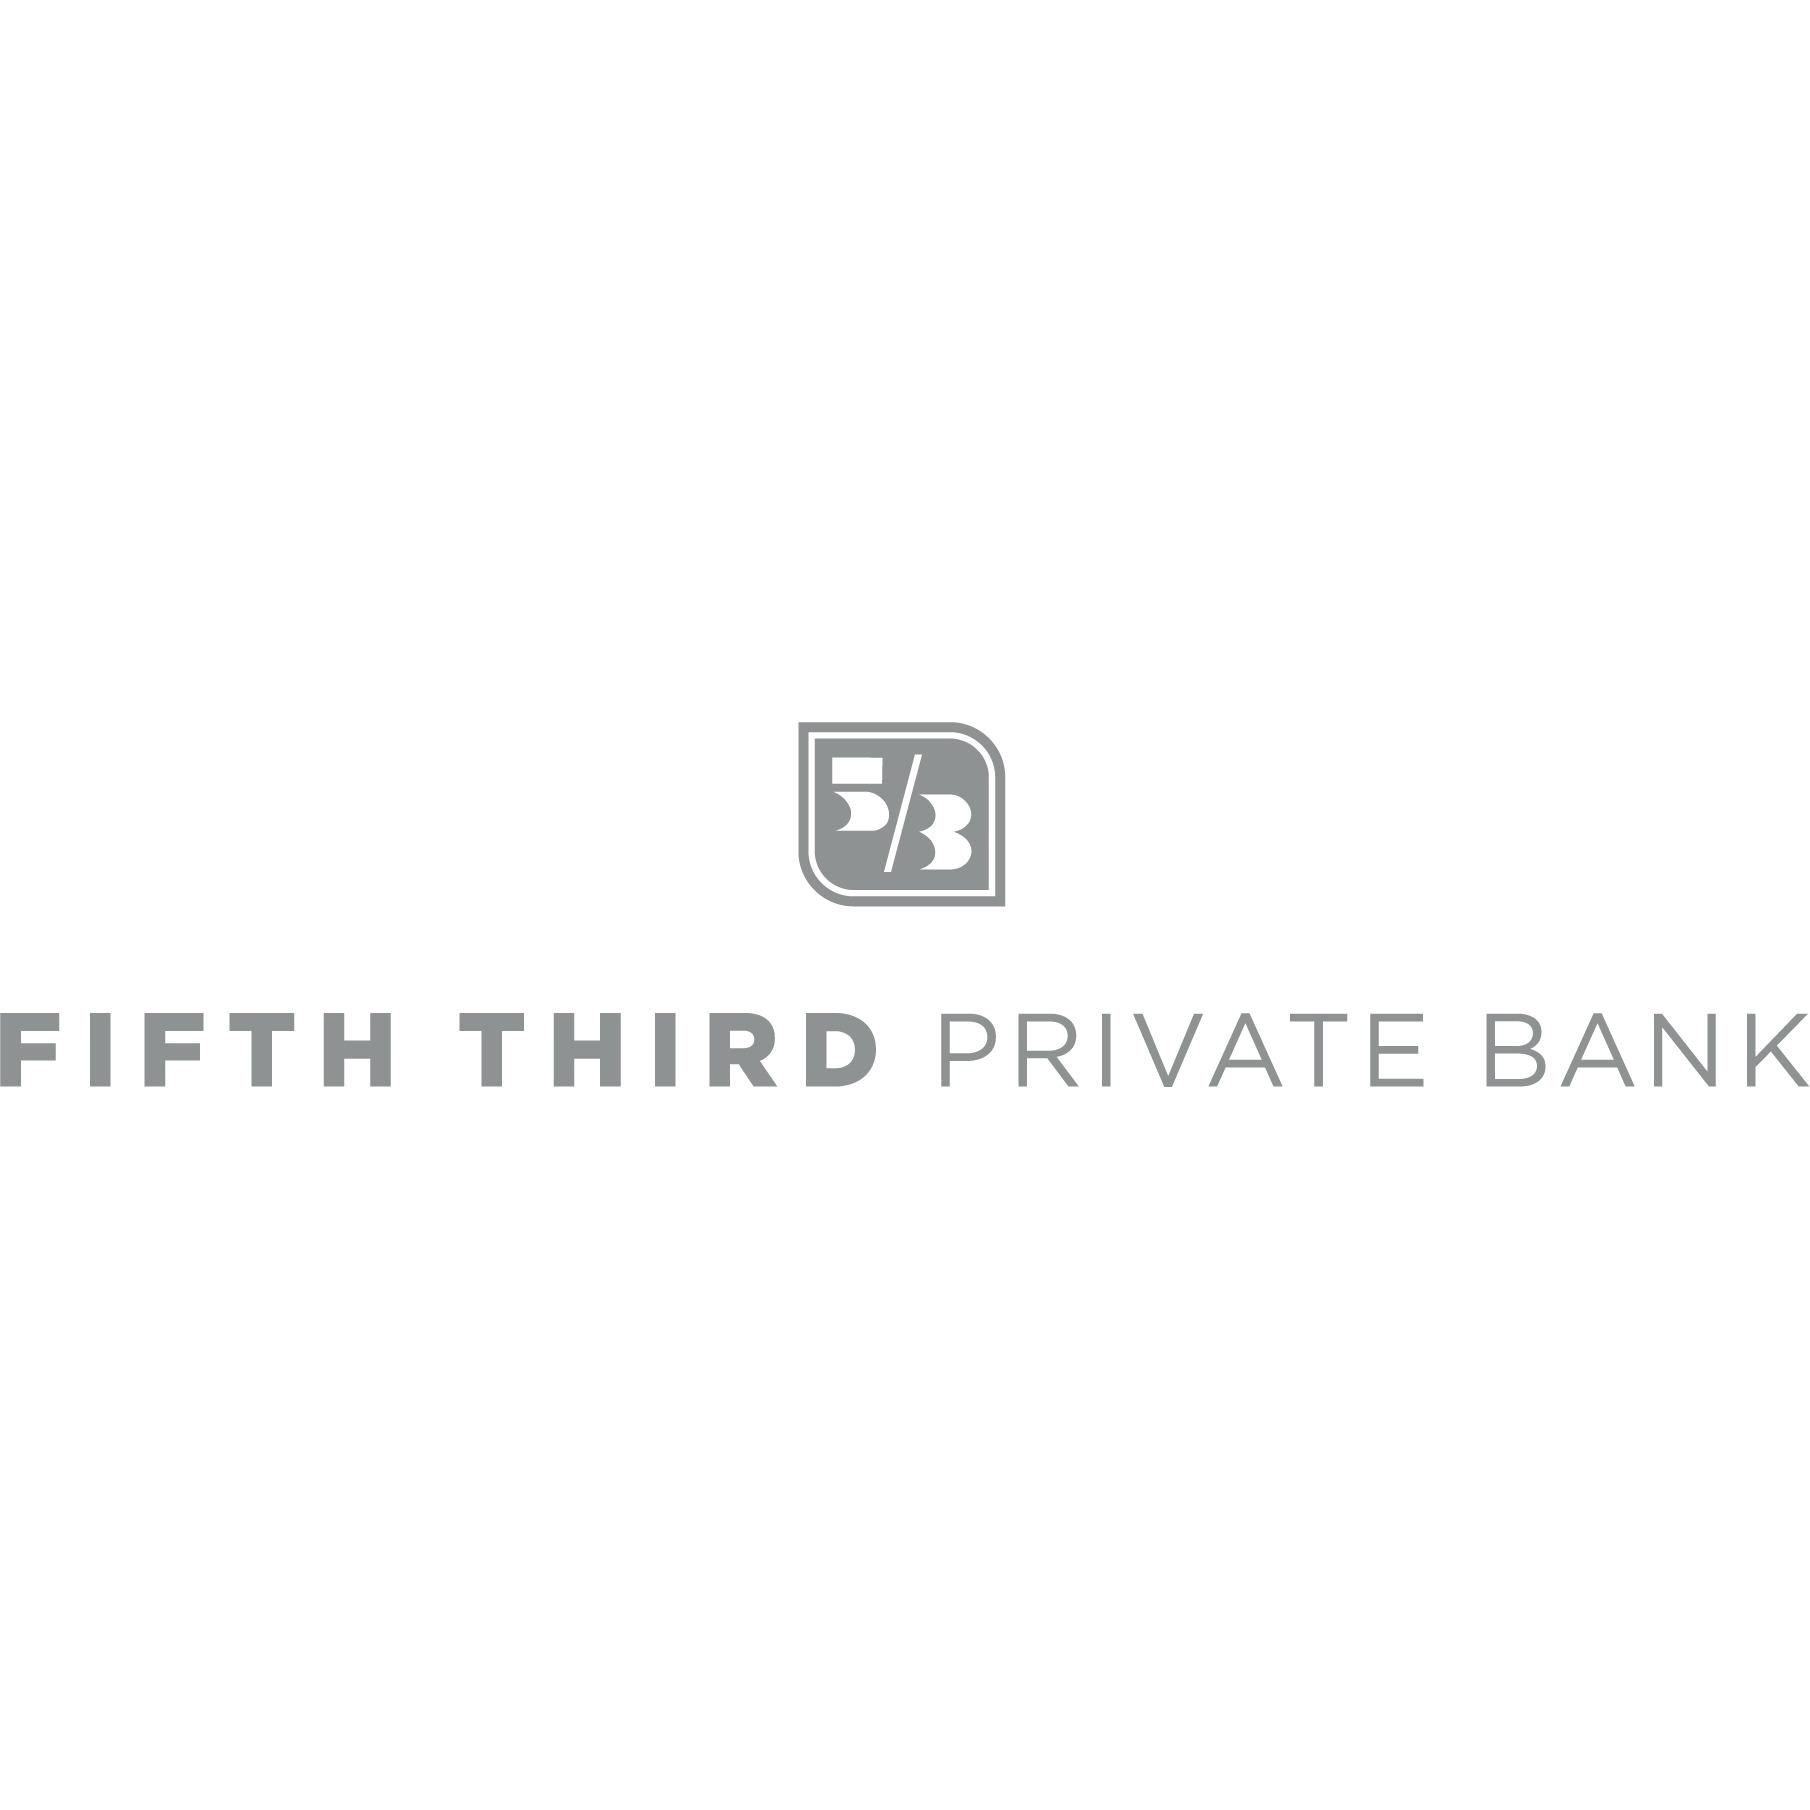 Fifth Third Private Bank - Ryan Hoskins